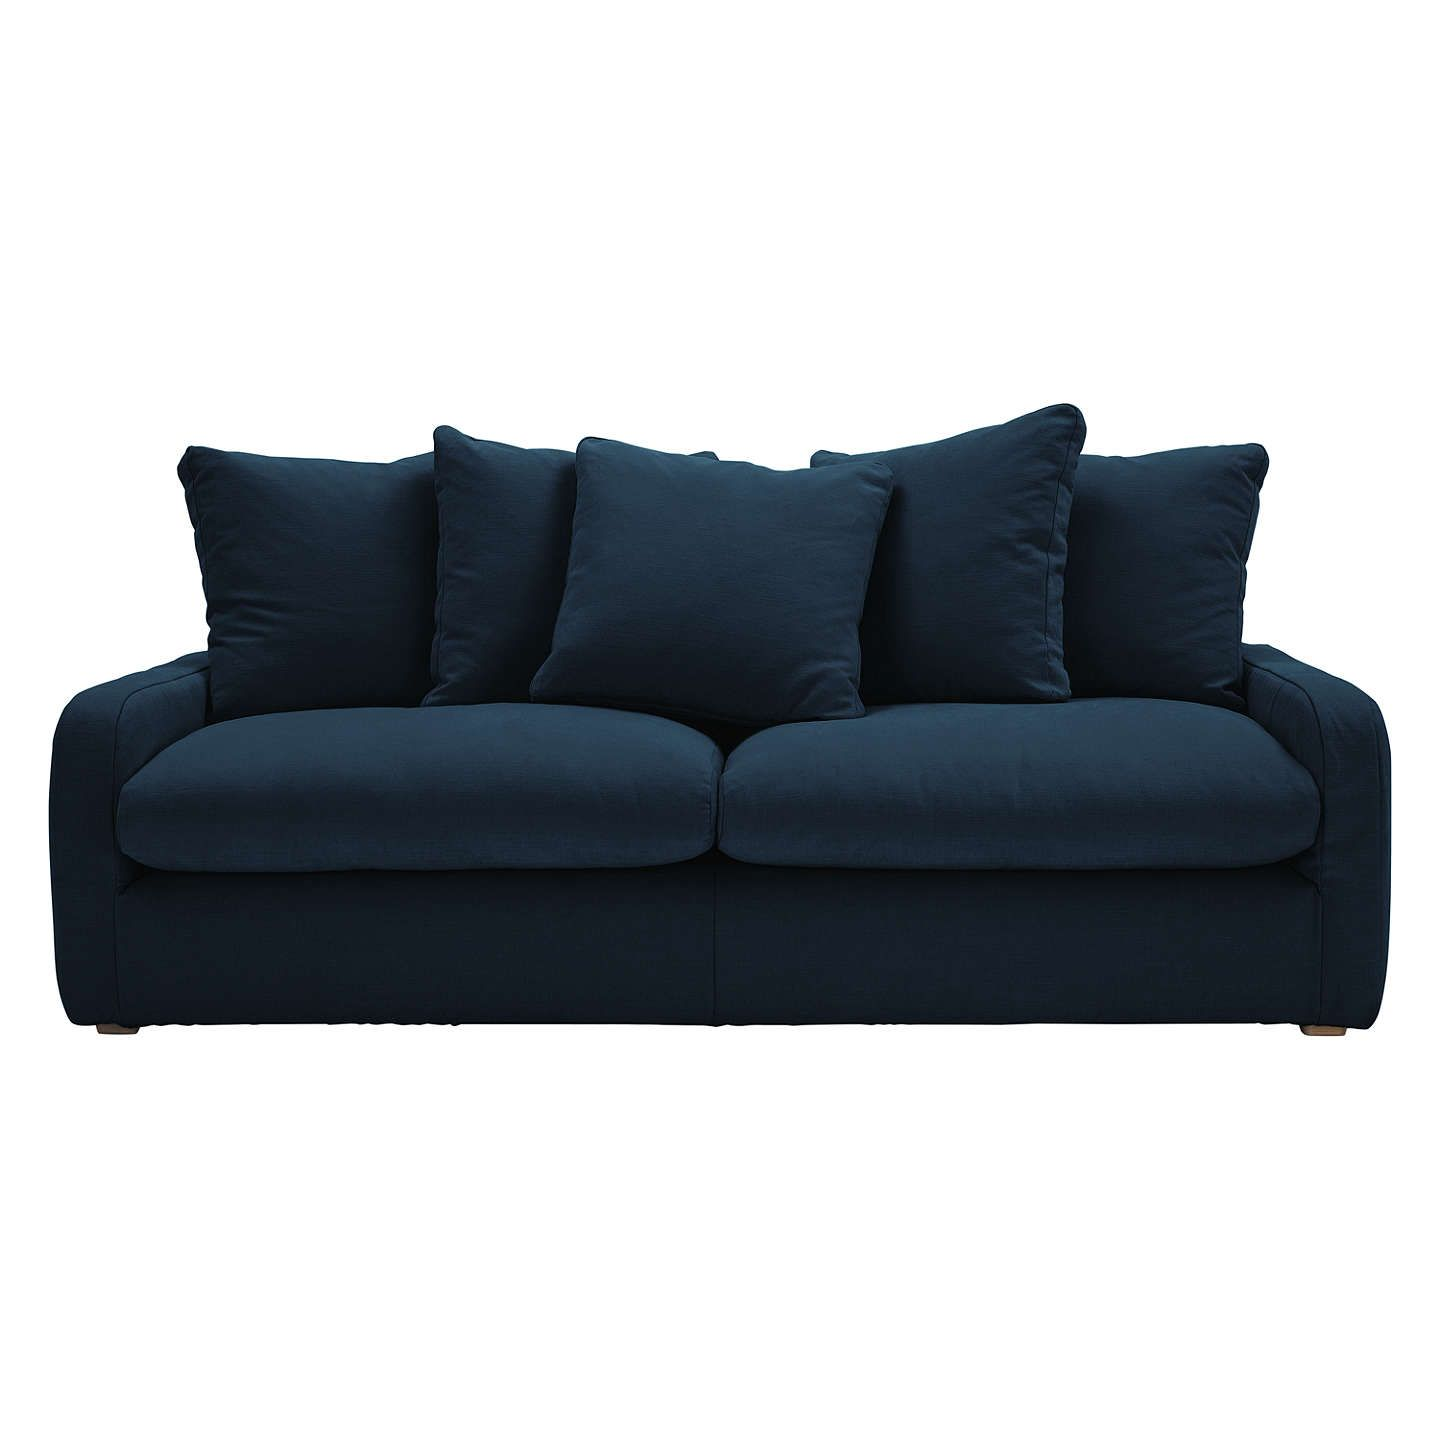 Floppy Jo 3 Seater Sofa by Loaf at John Lewis Brushed Cotton